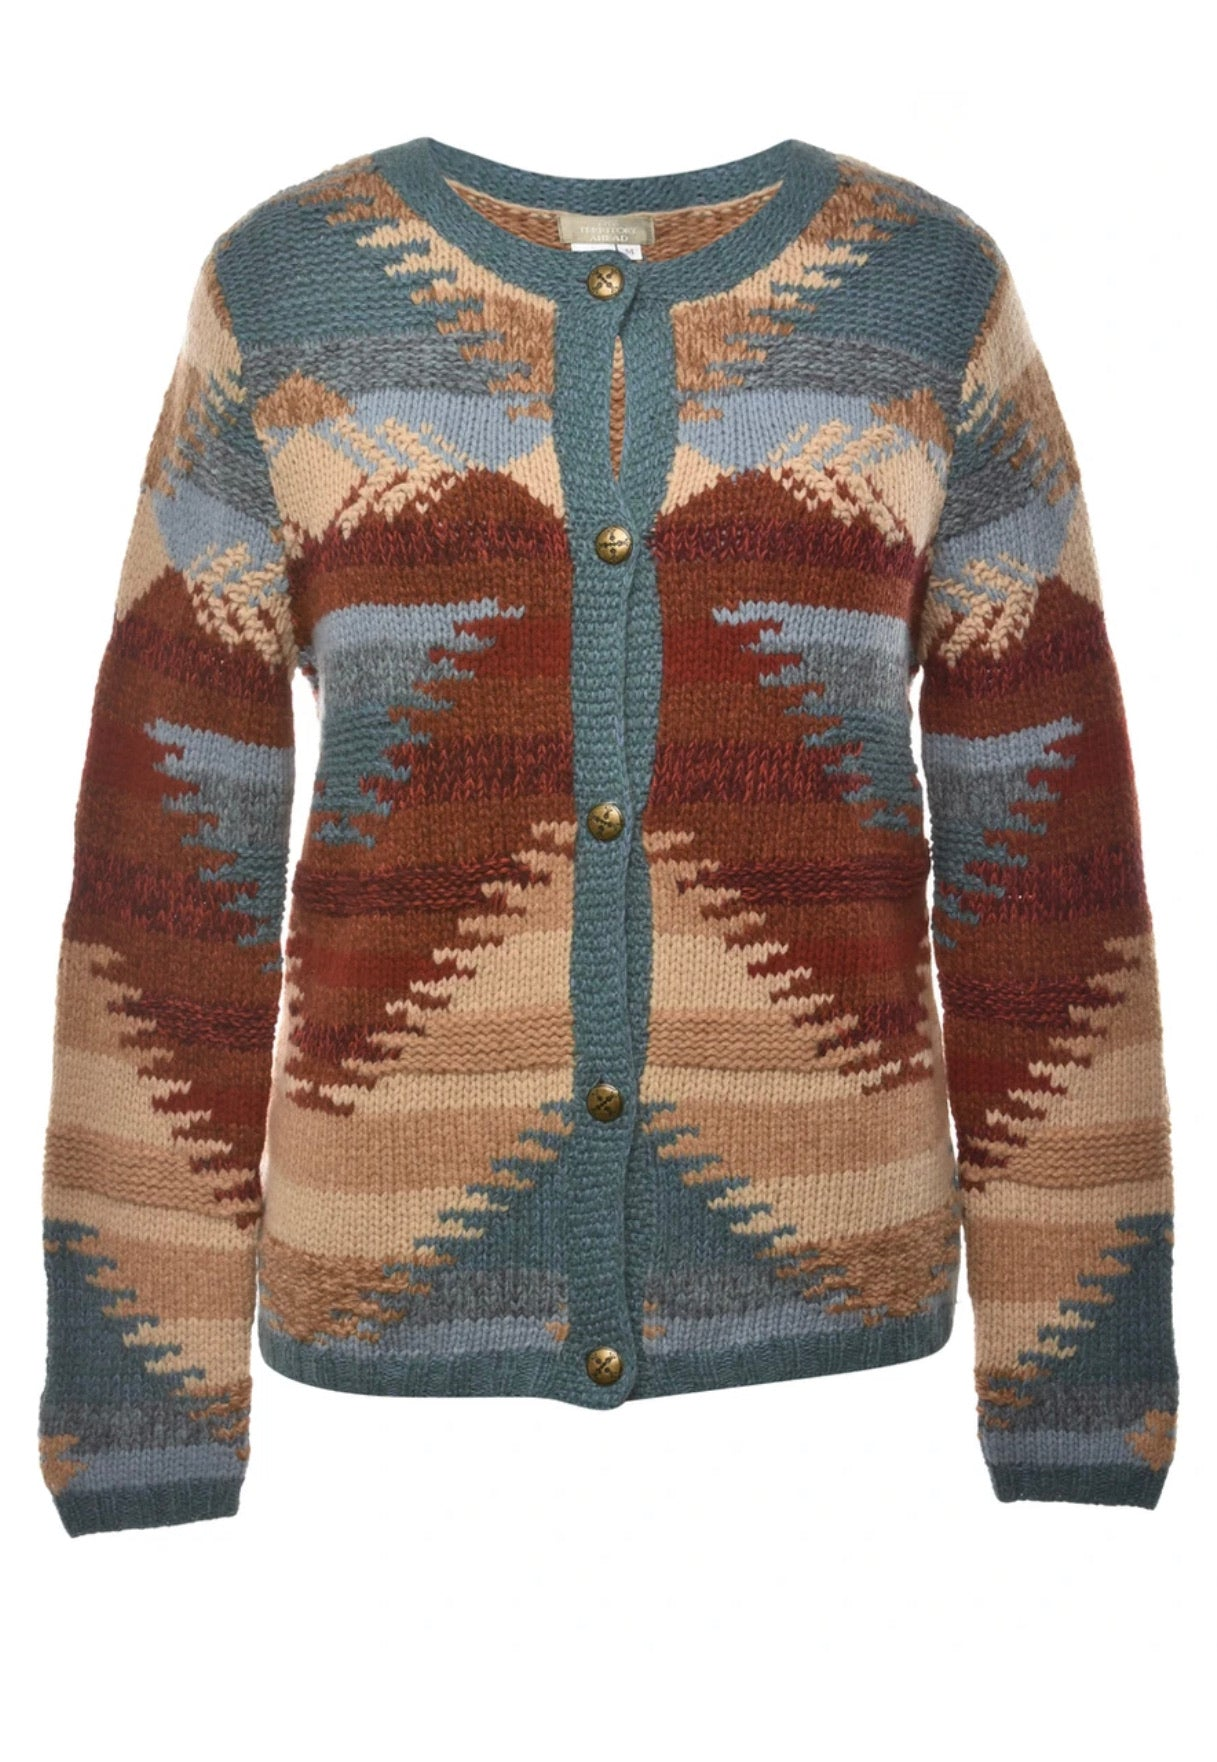 The Lima Chunky Cardigan